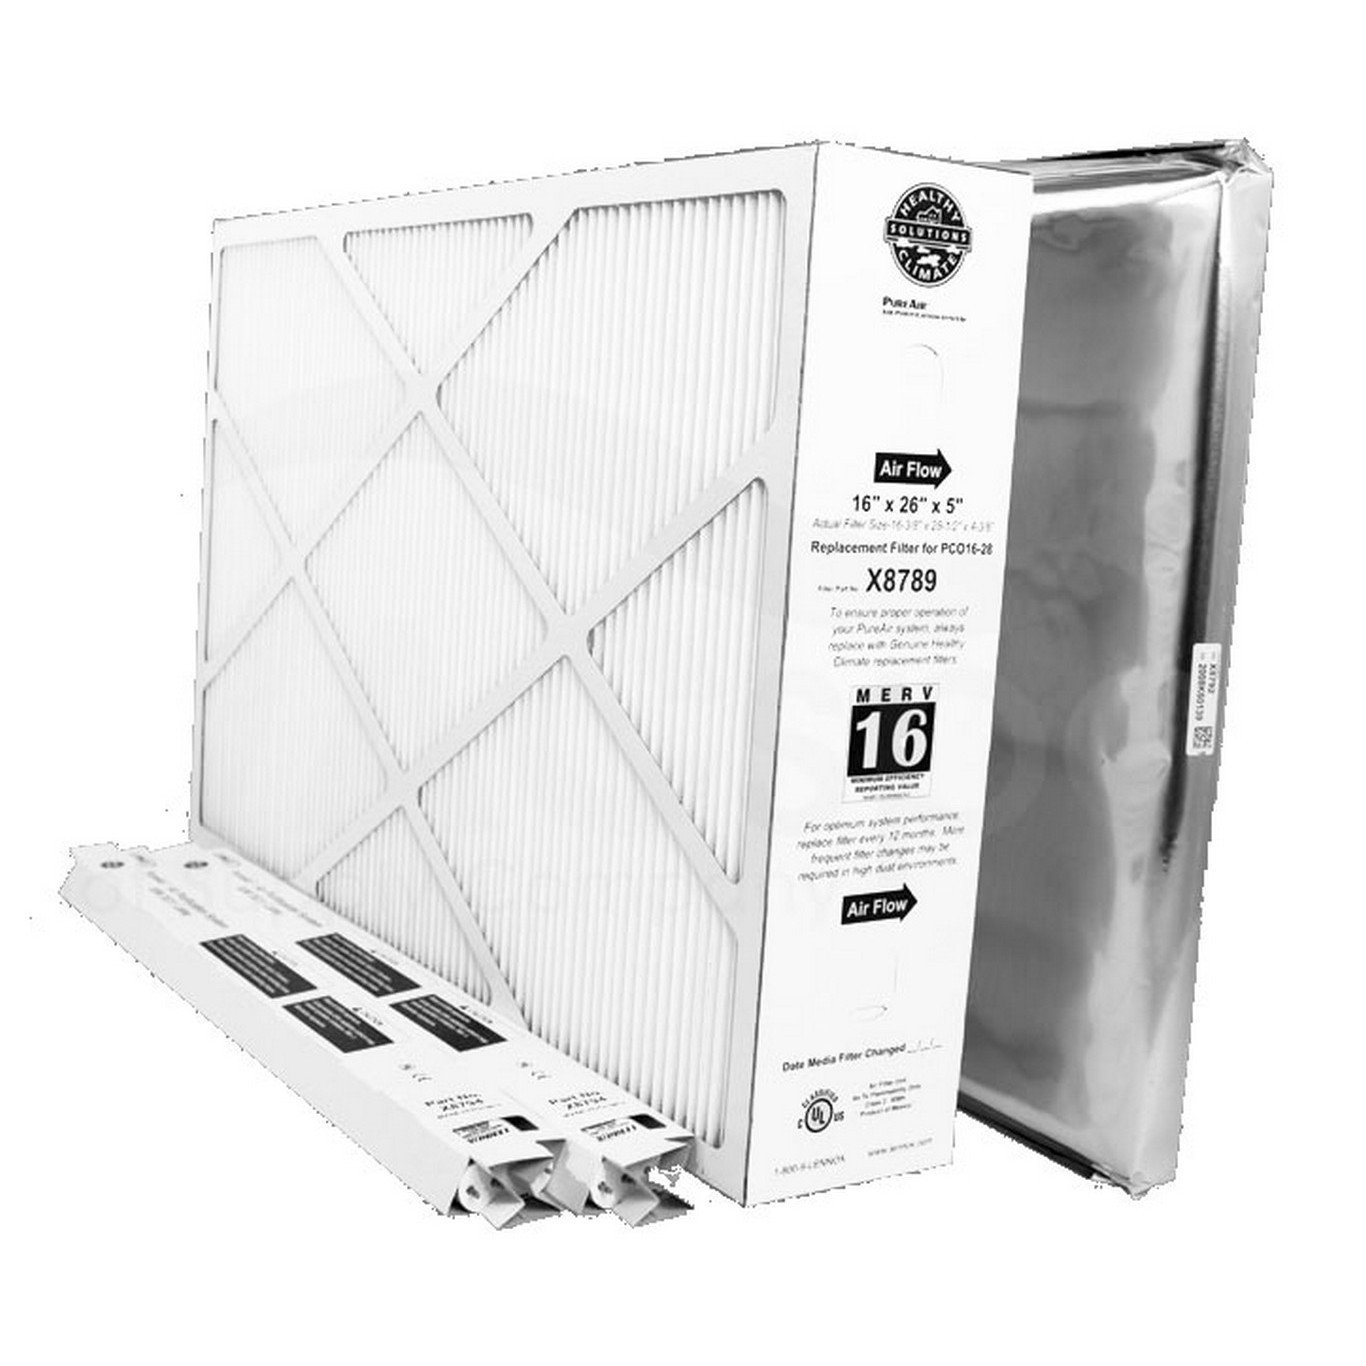 Air Purifiers Page 3 Super Savings Save Up To 40